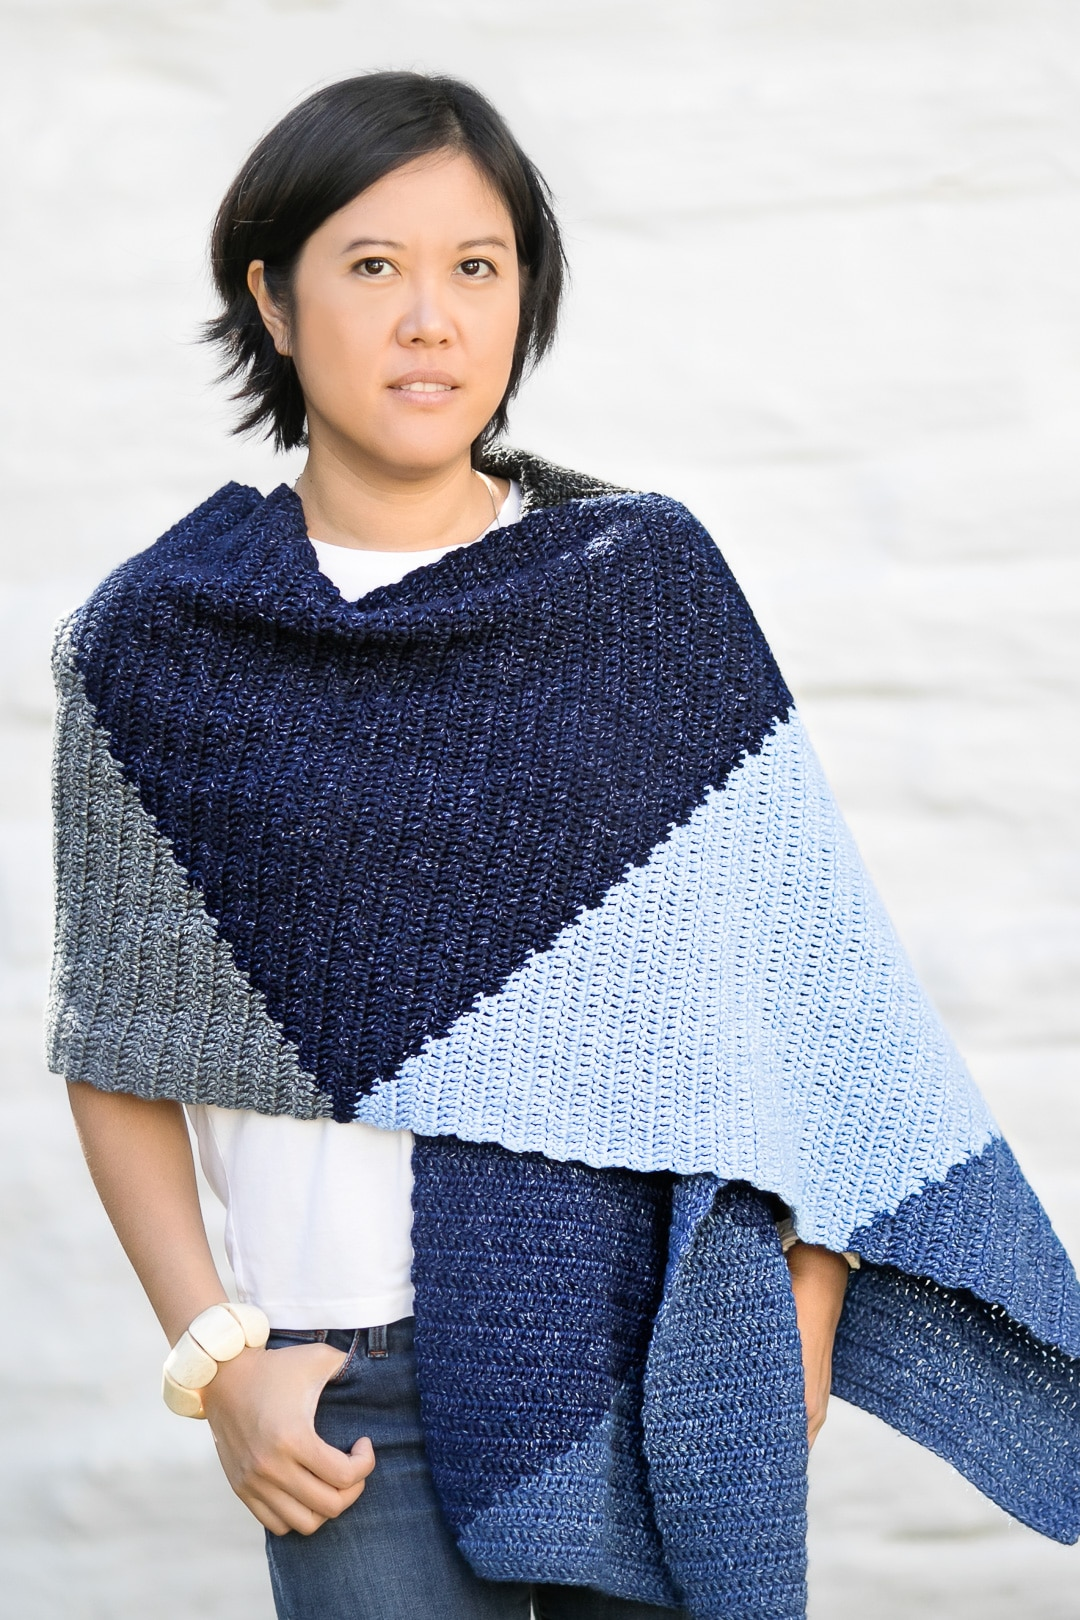 The Tangram Wrap: a Modern Crochet Scarf Wrap